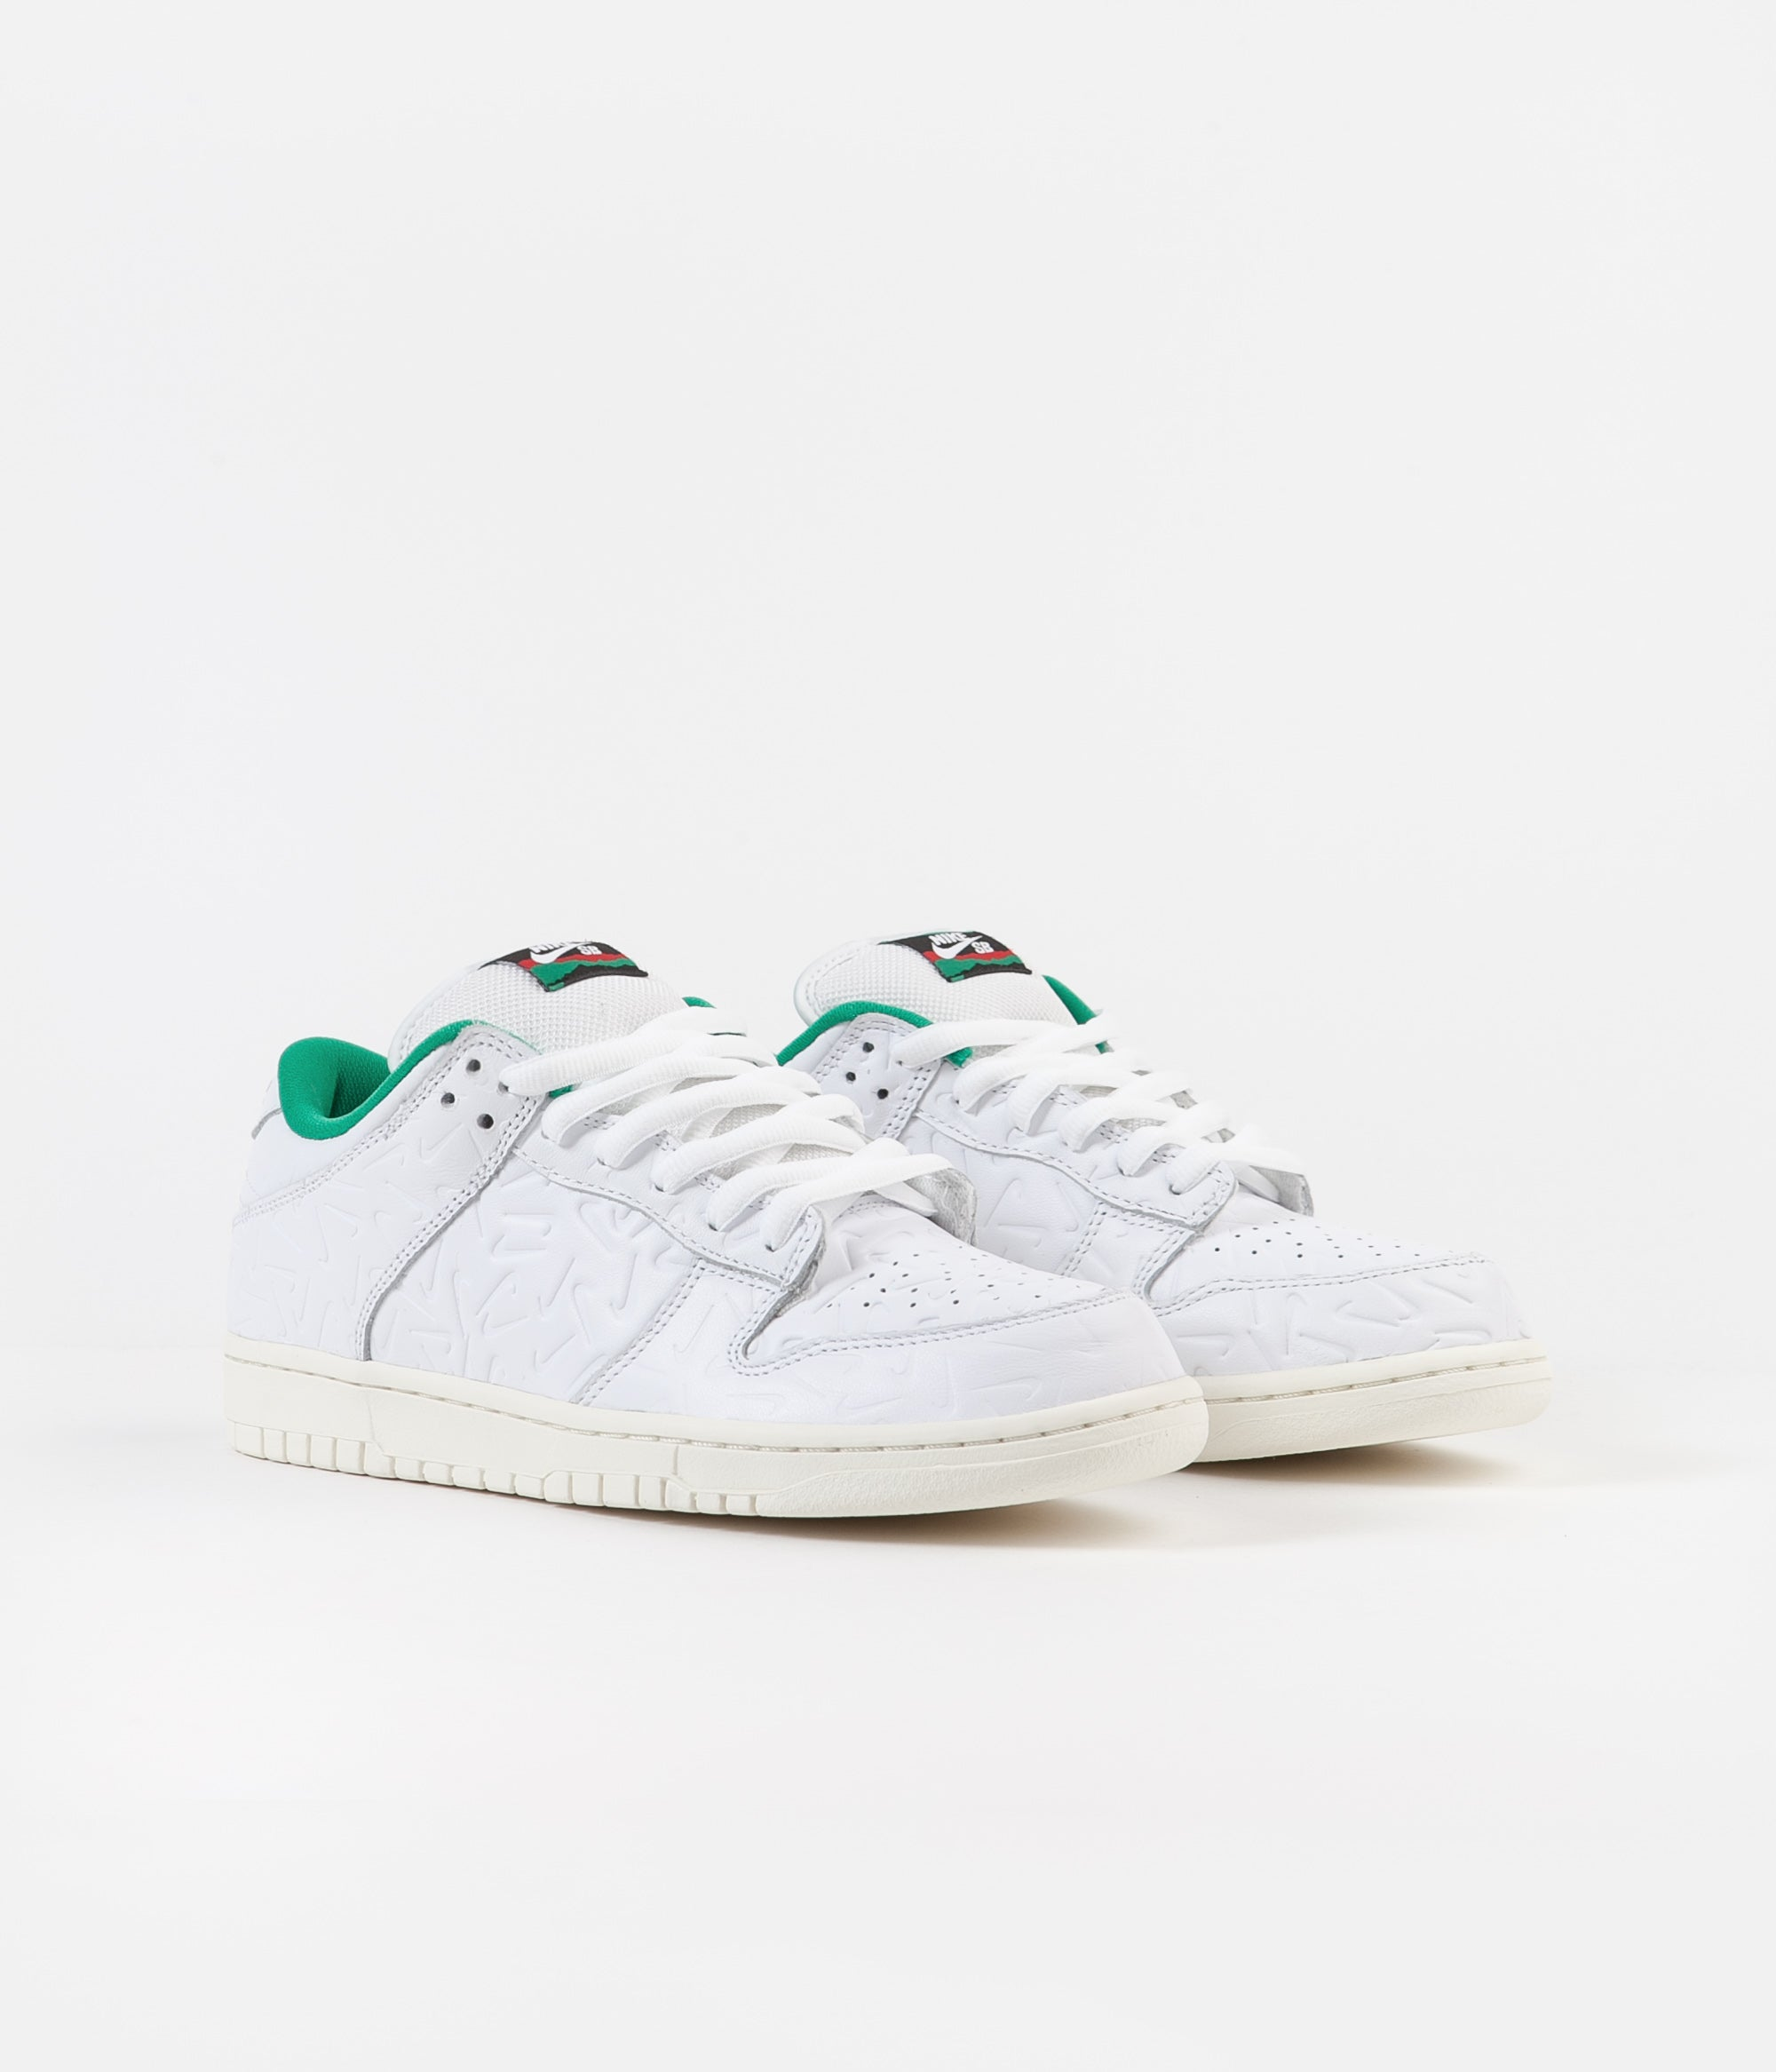 Nike SB x Ben-G Dunk Low OG 2 Shoes - White / White - Lucid Green - Sail